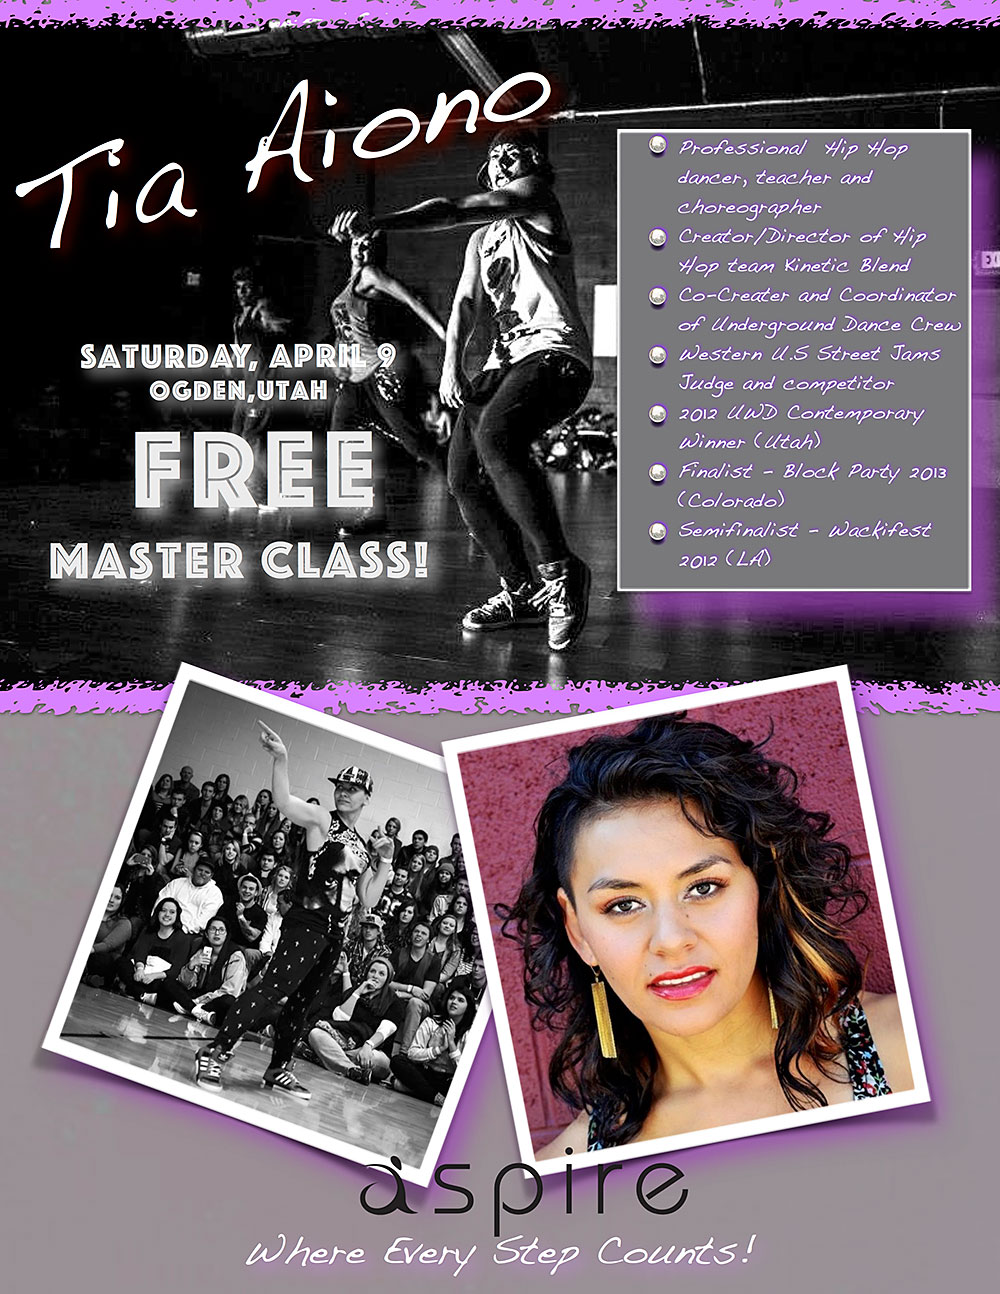 Tia Aiono - Aspire Dance Pro Competitions Masterclass Instructor